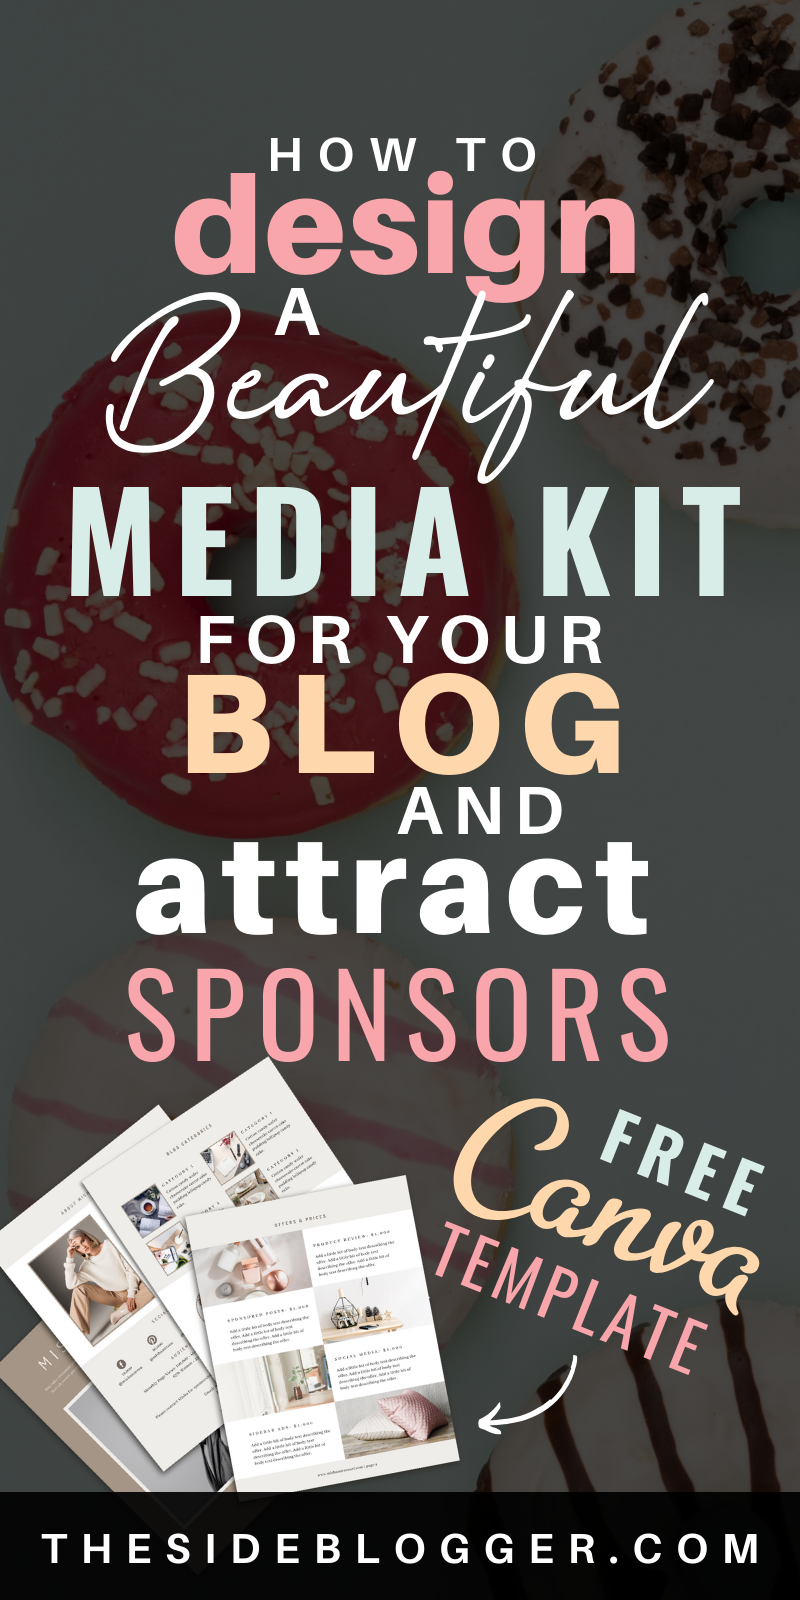 Do you want to make money blogging with sponsored posts and social media content? Then learn how to design a media kit that'll get those high-ticket brands and companies dying to work with you. In this post, you'll learn how to design a beautiful and functional media kit that actually works! Includes a free, 4-page media kit template in Canva. #mediakit #bloggingresources #makemoneyblogging #bloggingtips #canvaresources #canvatemplates